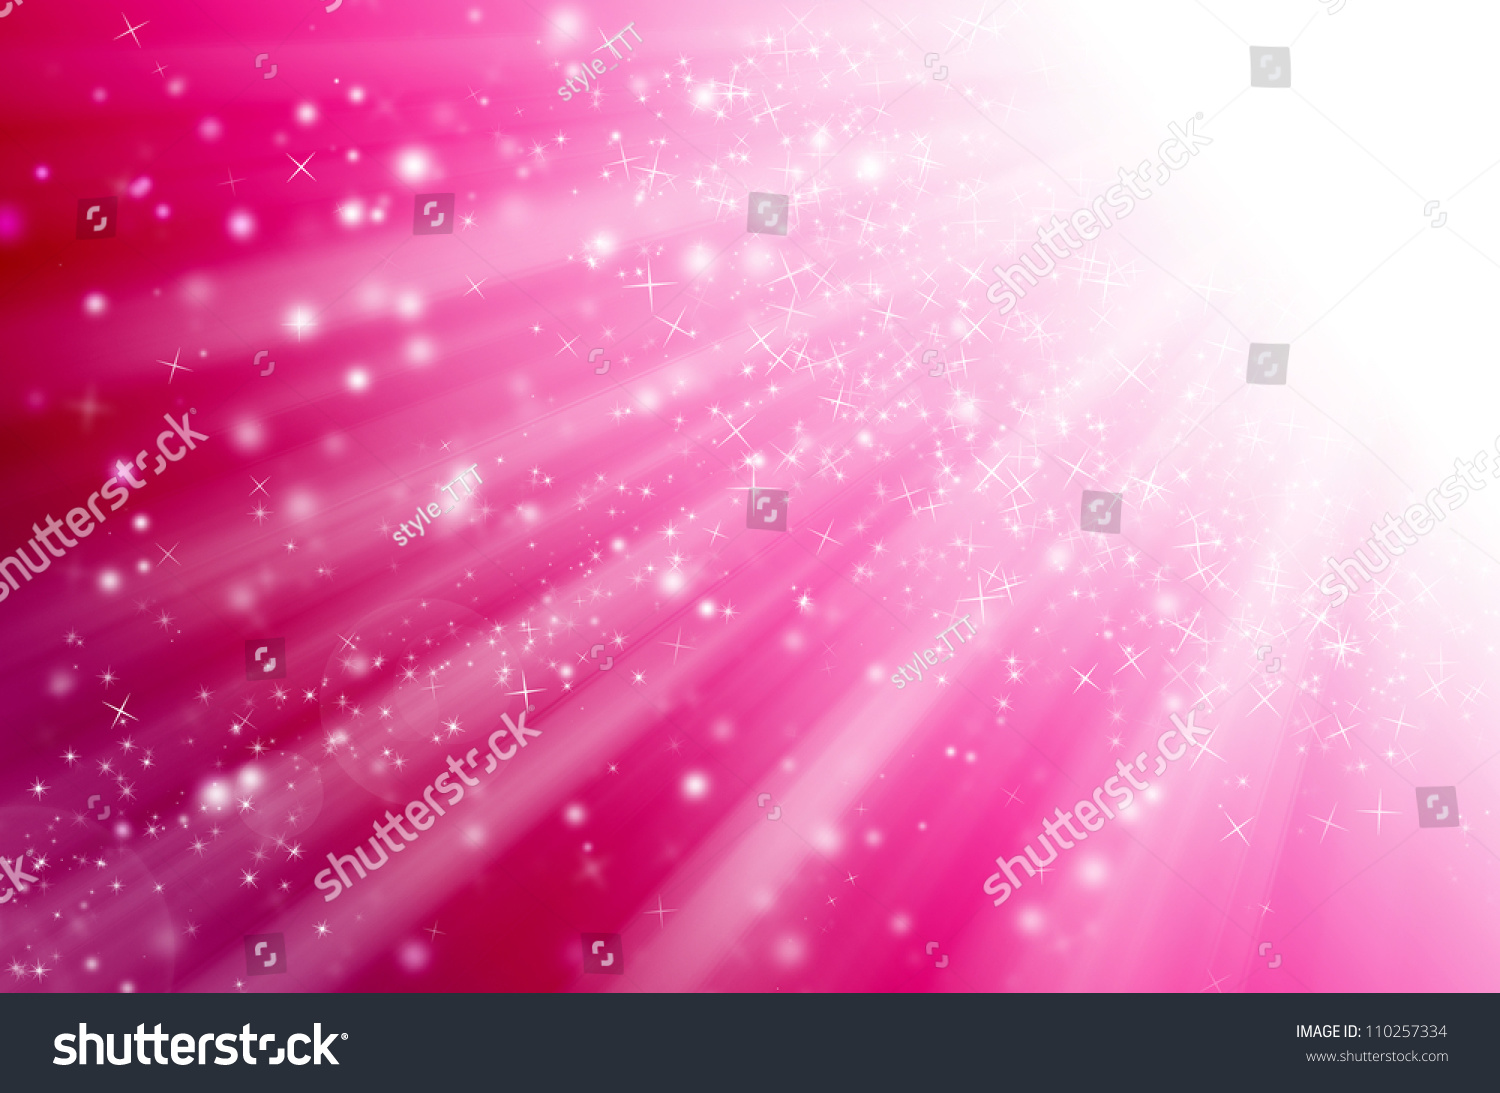 Star Light Pink Background Stock Illustration 110257334 - Shutterstock